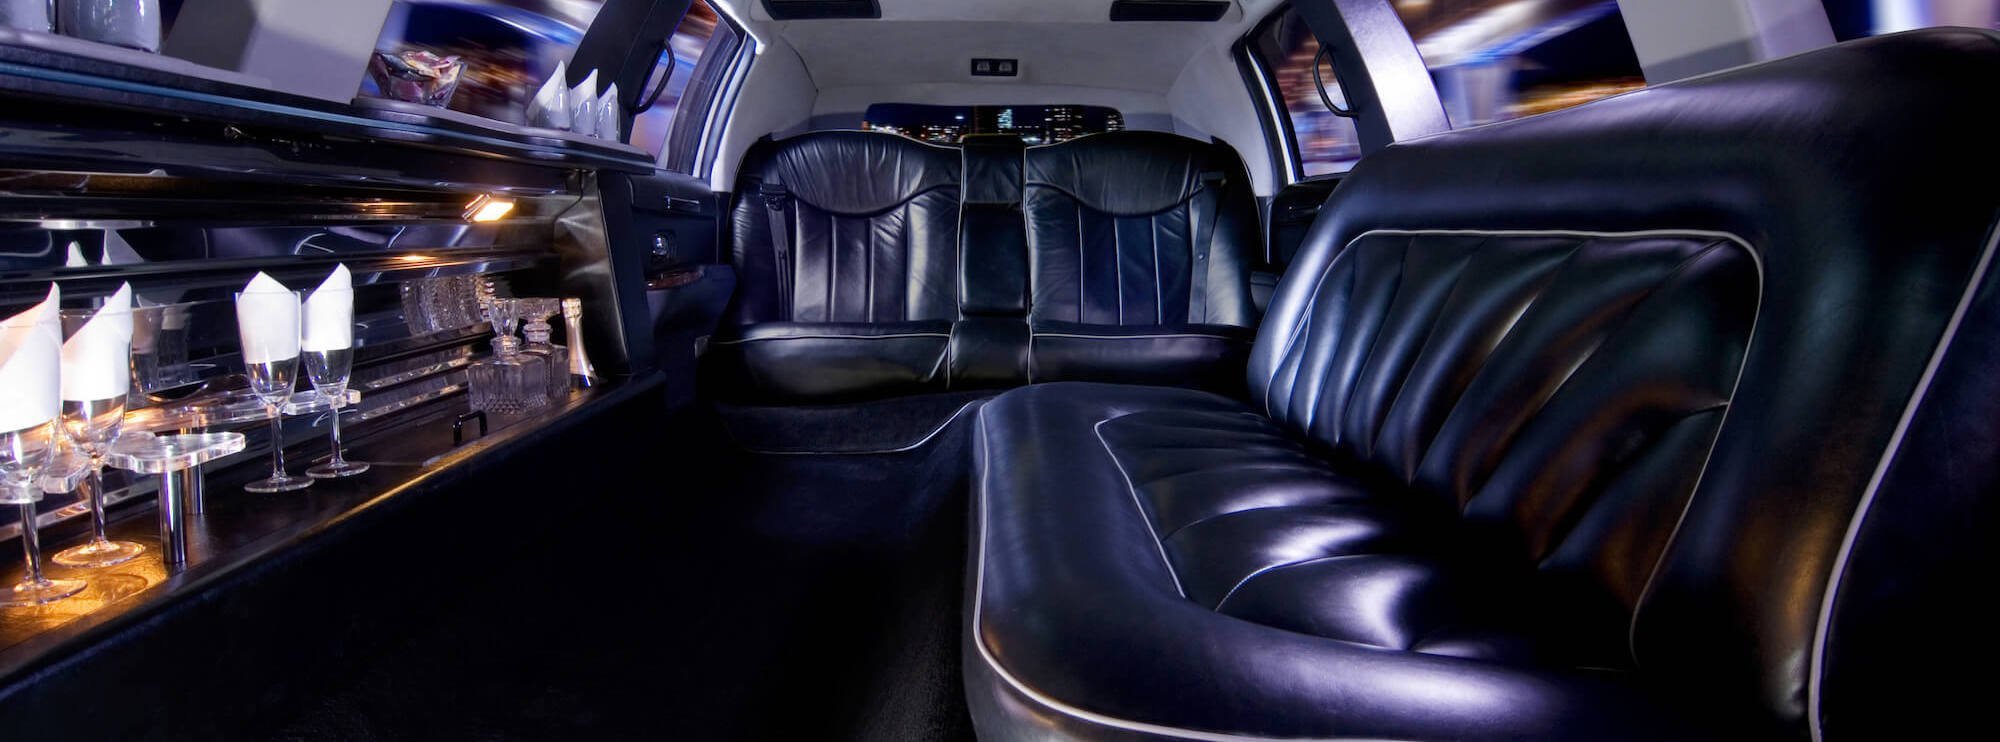 limo service st petersburg fl